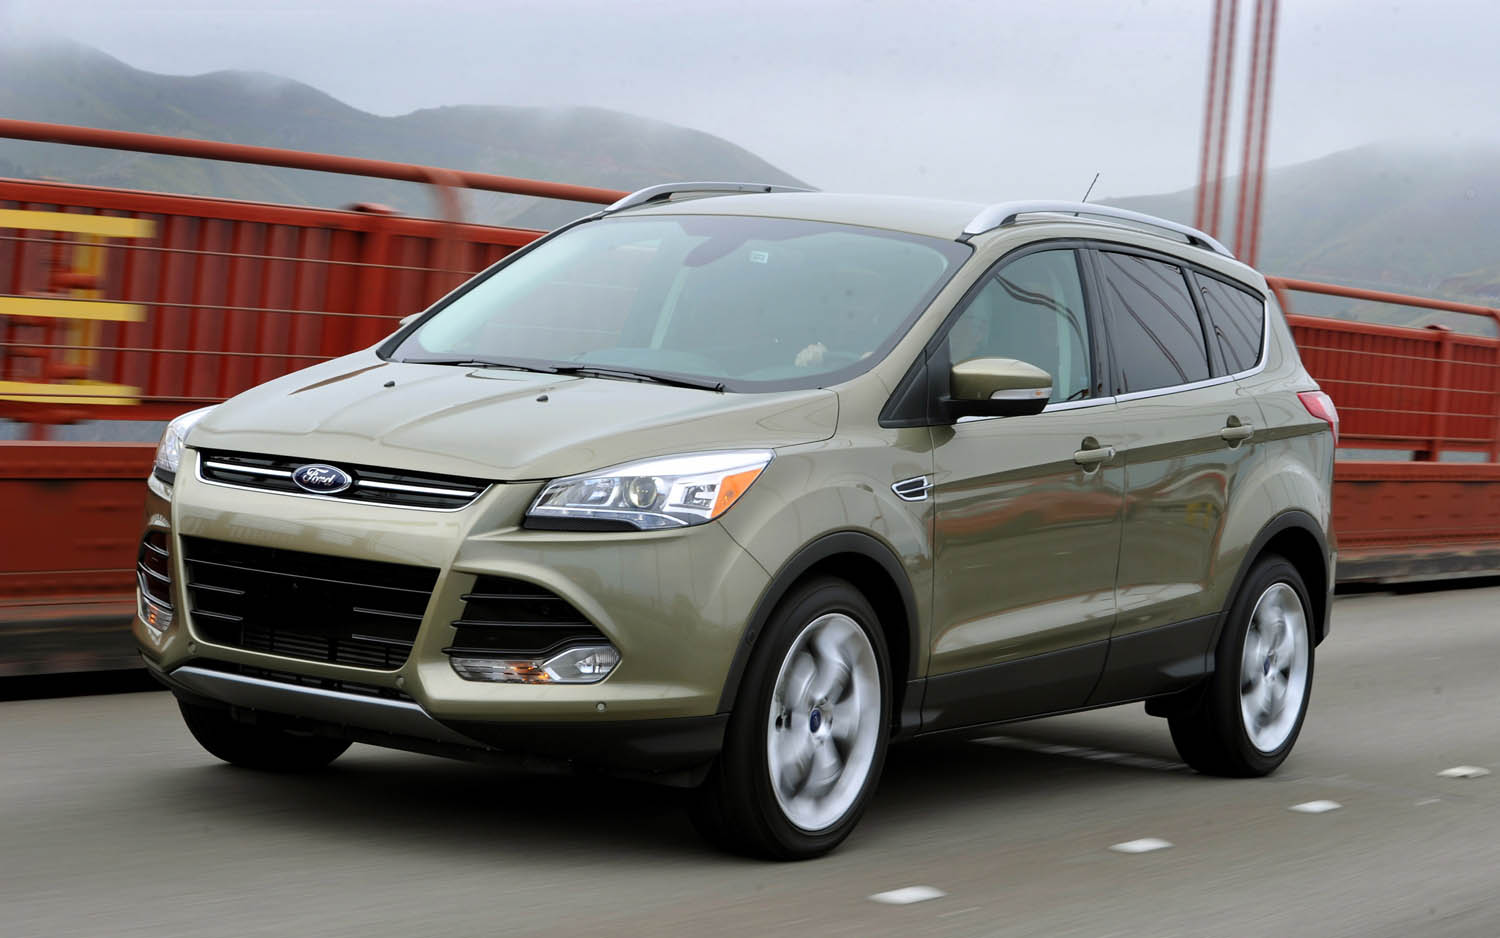 world of cars ford escape information and reviews. Black Bedroom Furniture Sets. Home Design Ideas